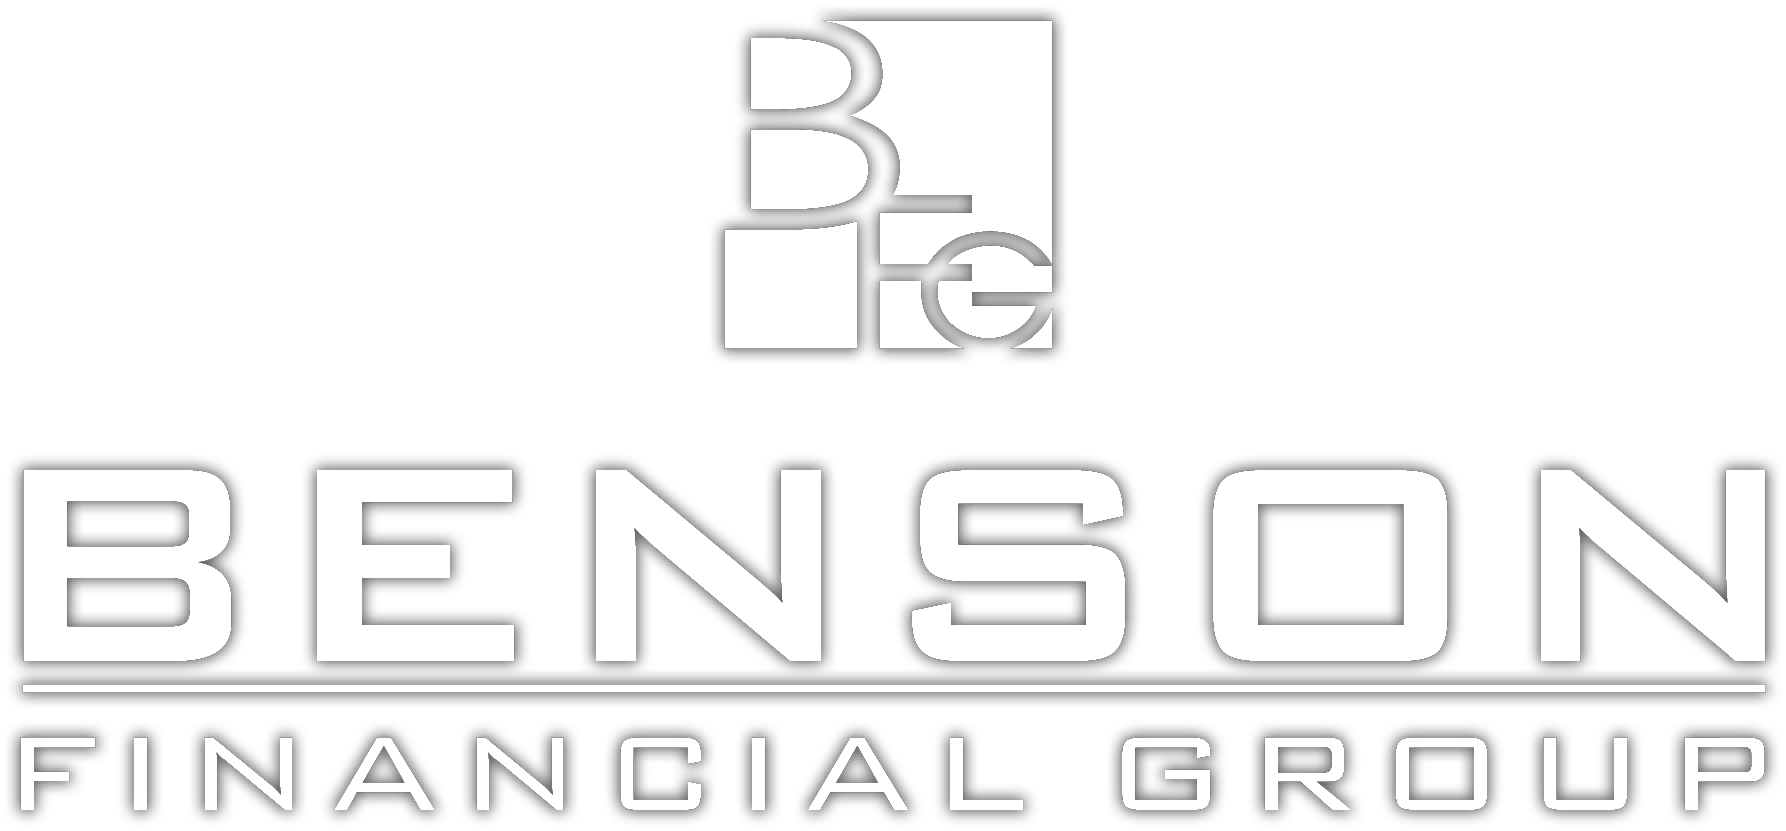 Benson Financial Group